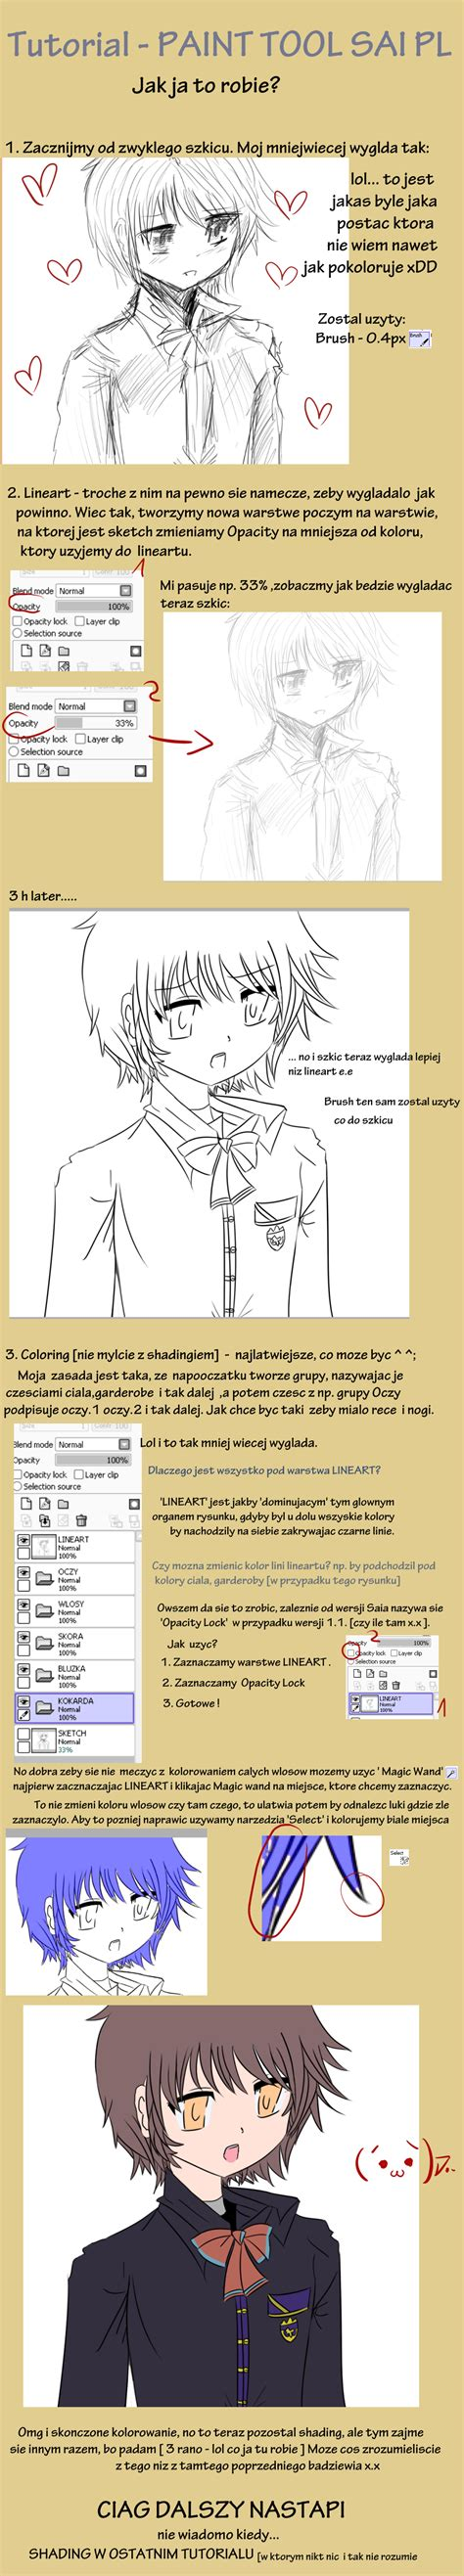 paint tool sai tutorial pl v2 lineart and color by toushiirou on deviantart